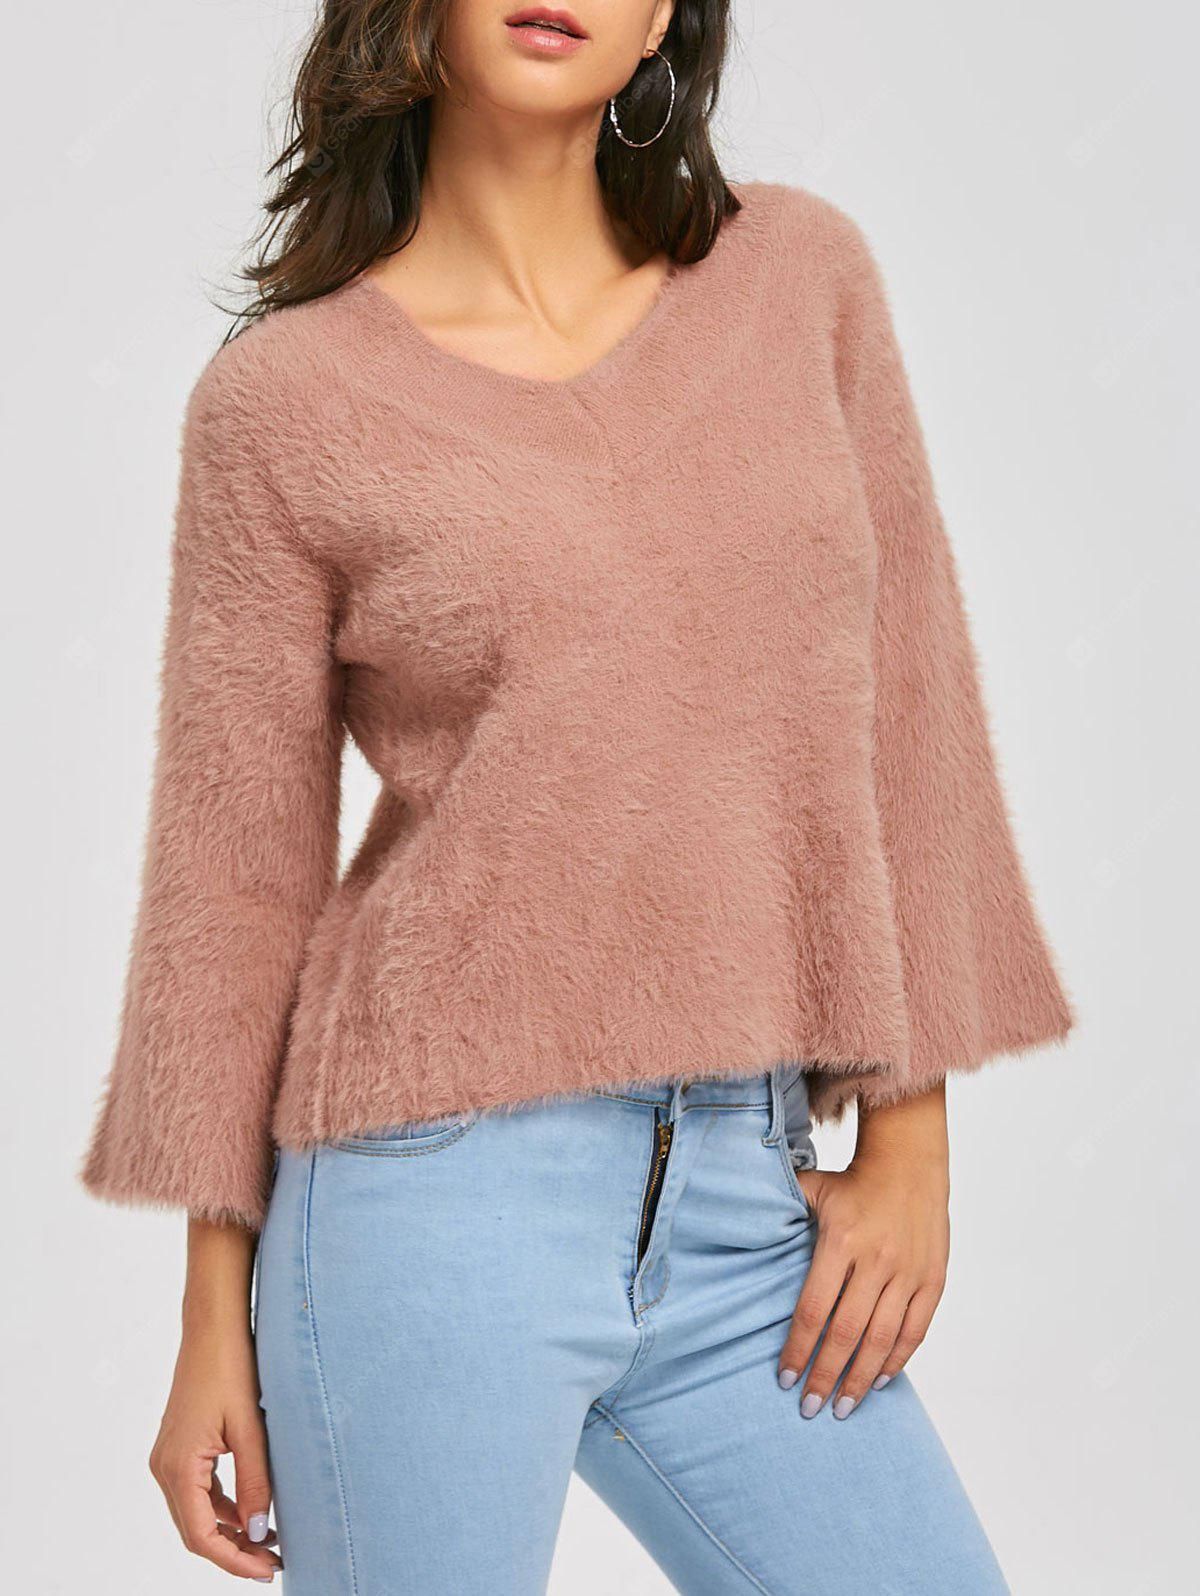 V Neck Batwing Sleeve Fuzzy Sweater